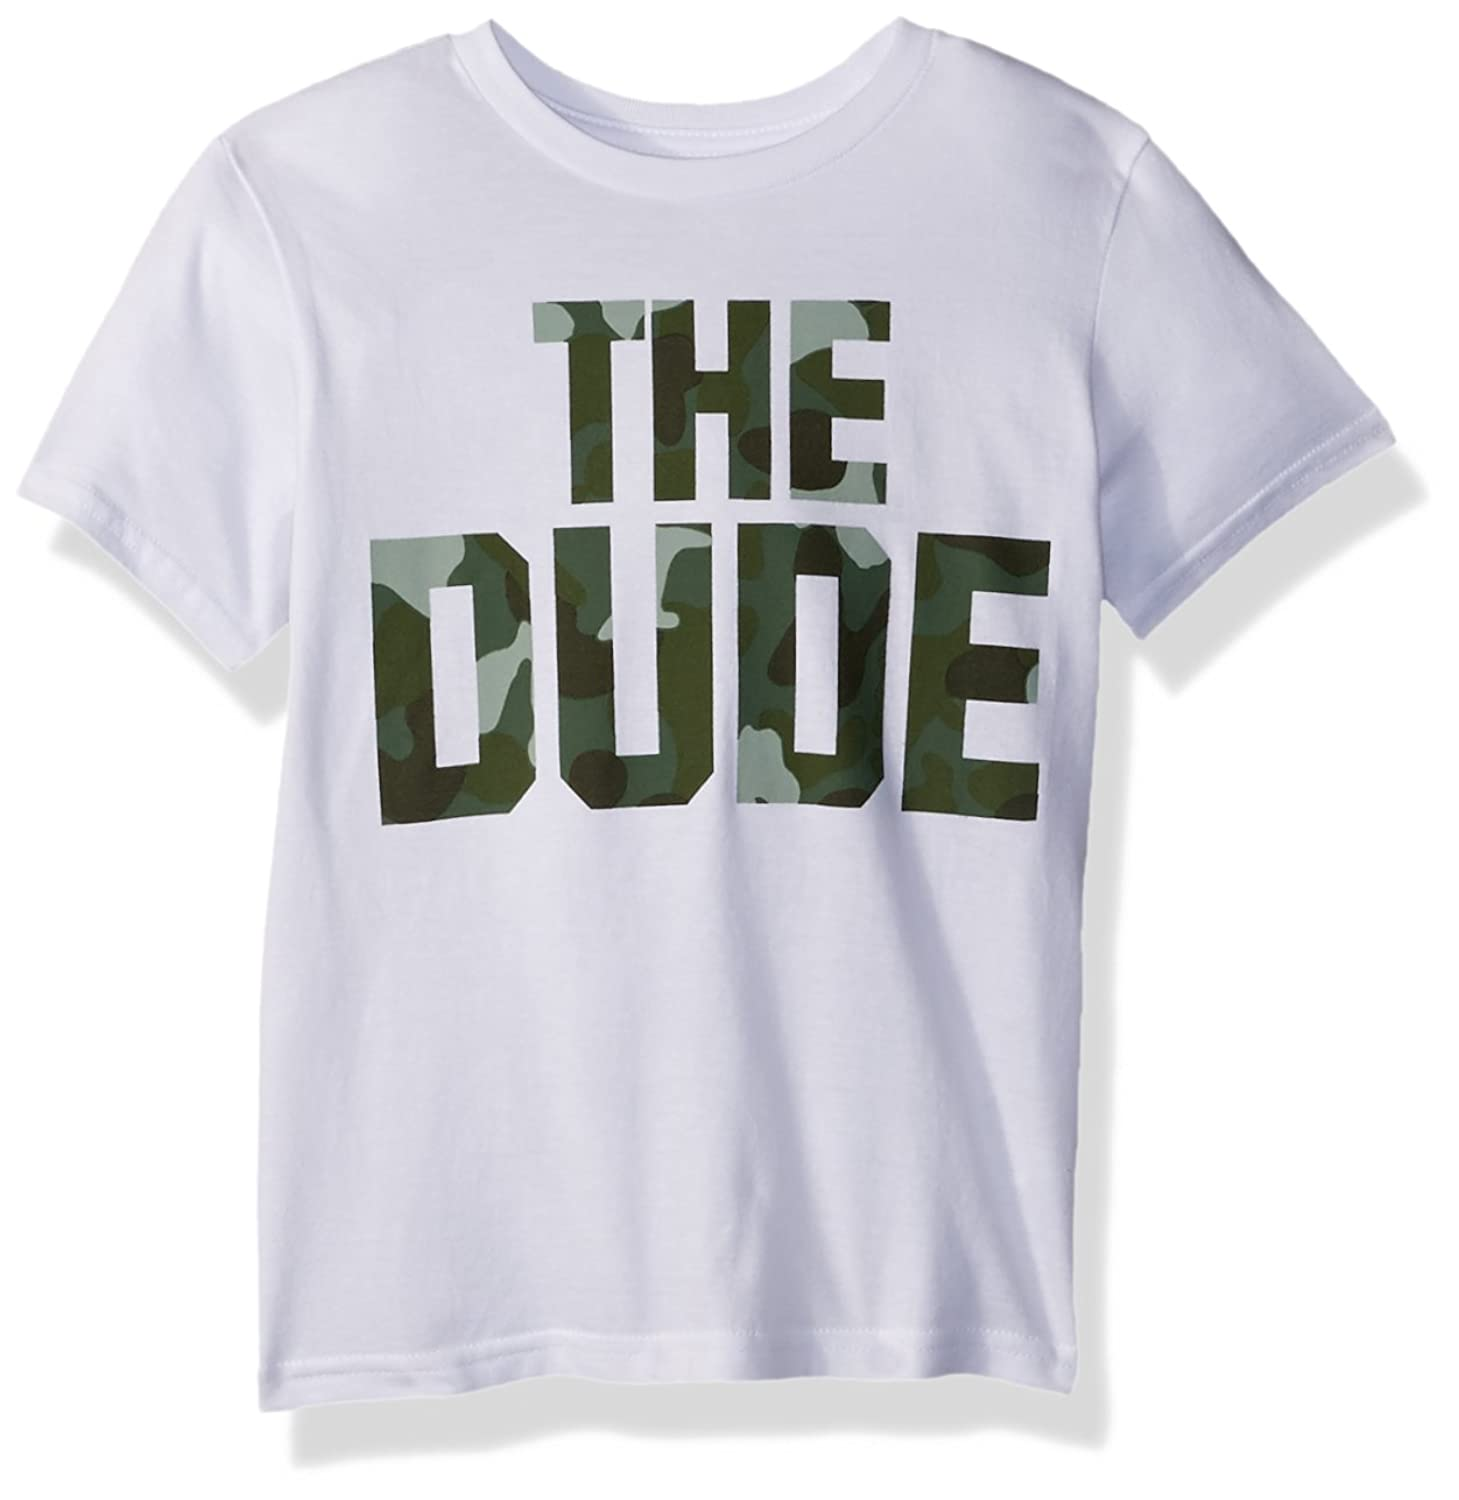 top The Children's Place Big Boys' Rebel Rider Graphic Tee save more